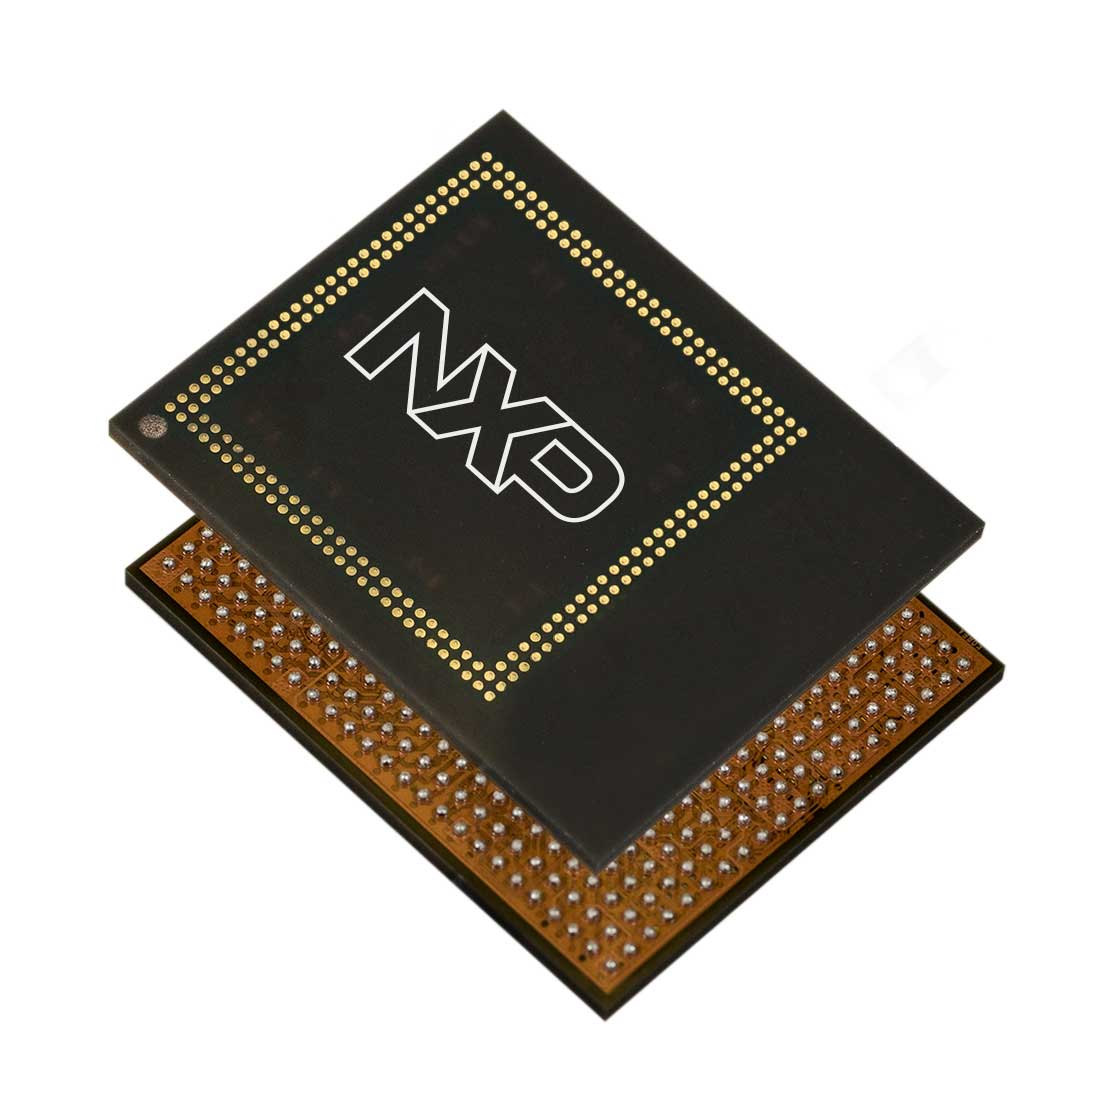 Single Chip Module-i.MX 6D